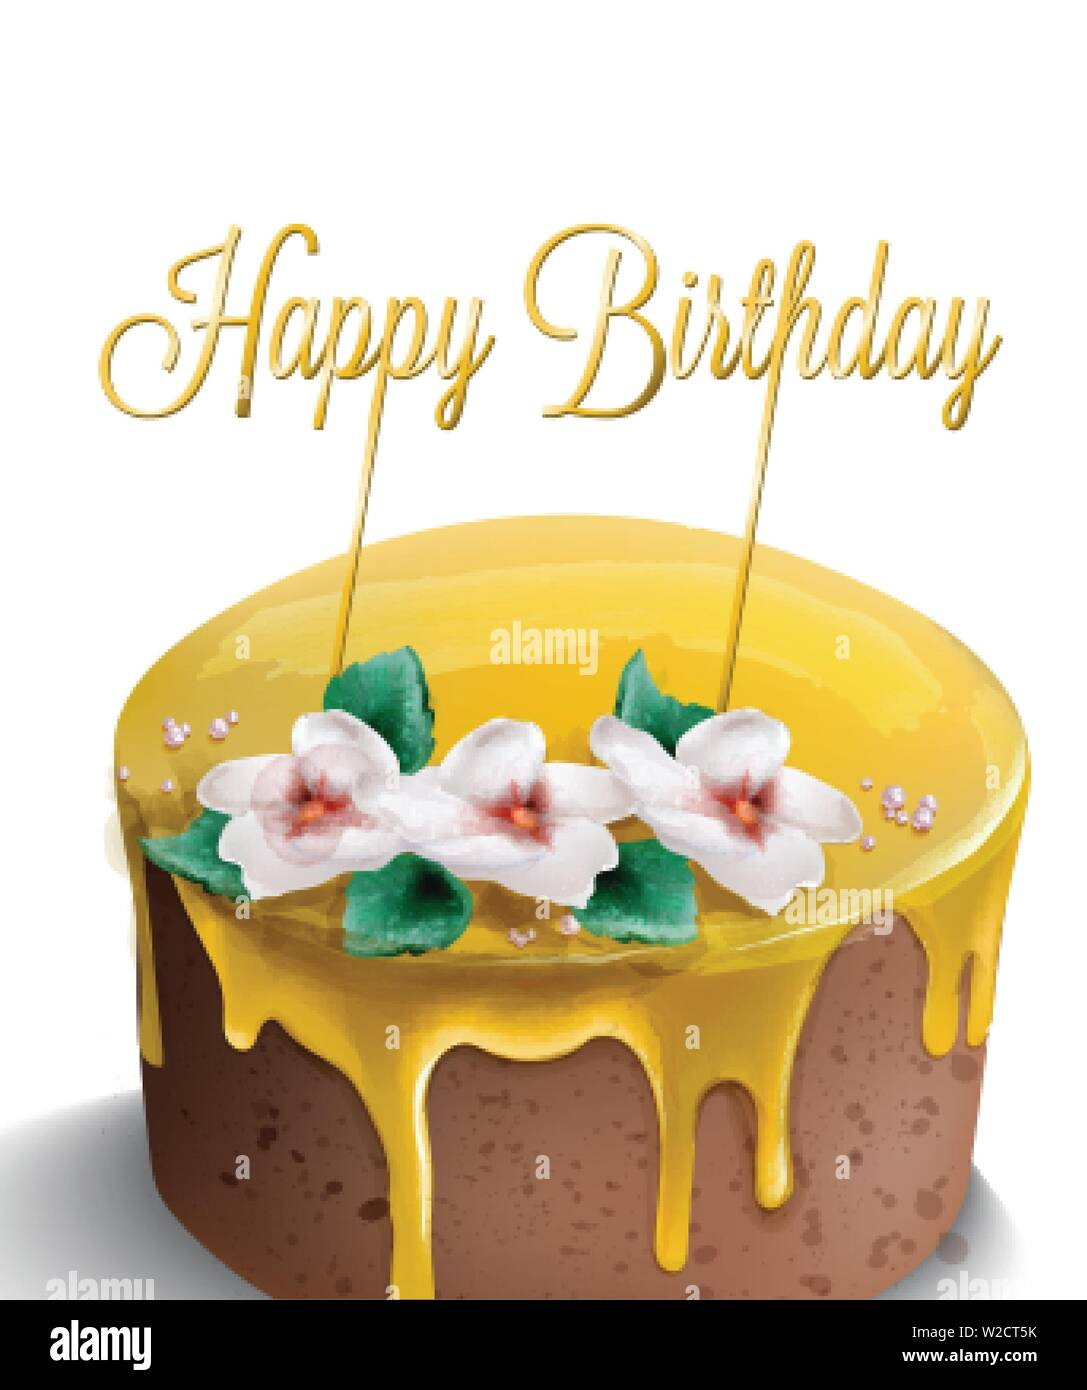 Happy Birthday Cake Vector Watercolor Yellow Top Golden Text And Flowers Decor Stock Vector Image Art Alamy